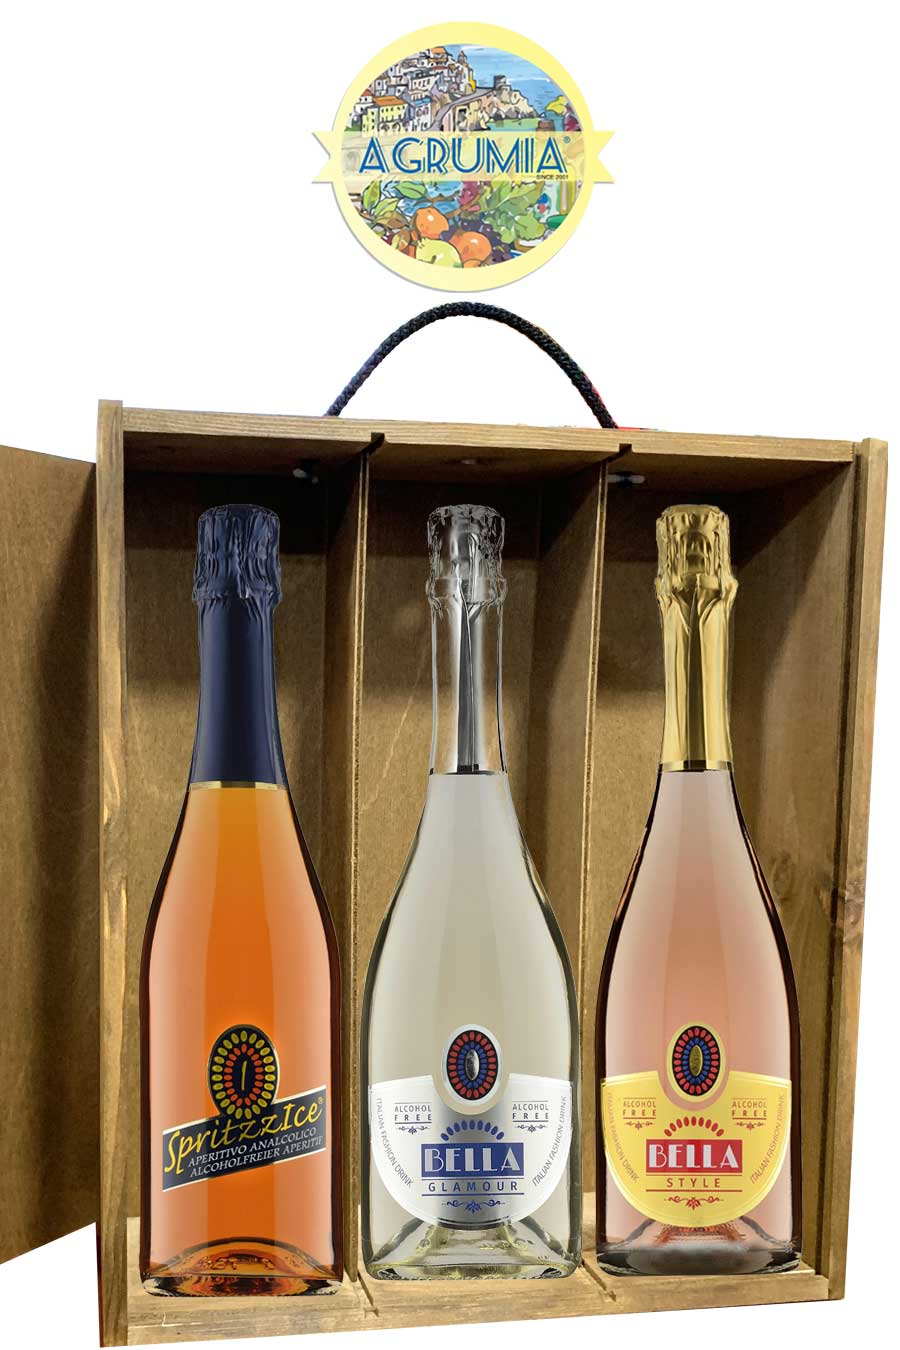 Agrumia Alcohol-Free Wine Hamper Set - Agrumia